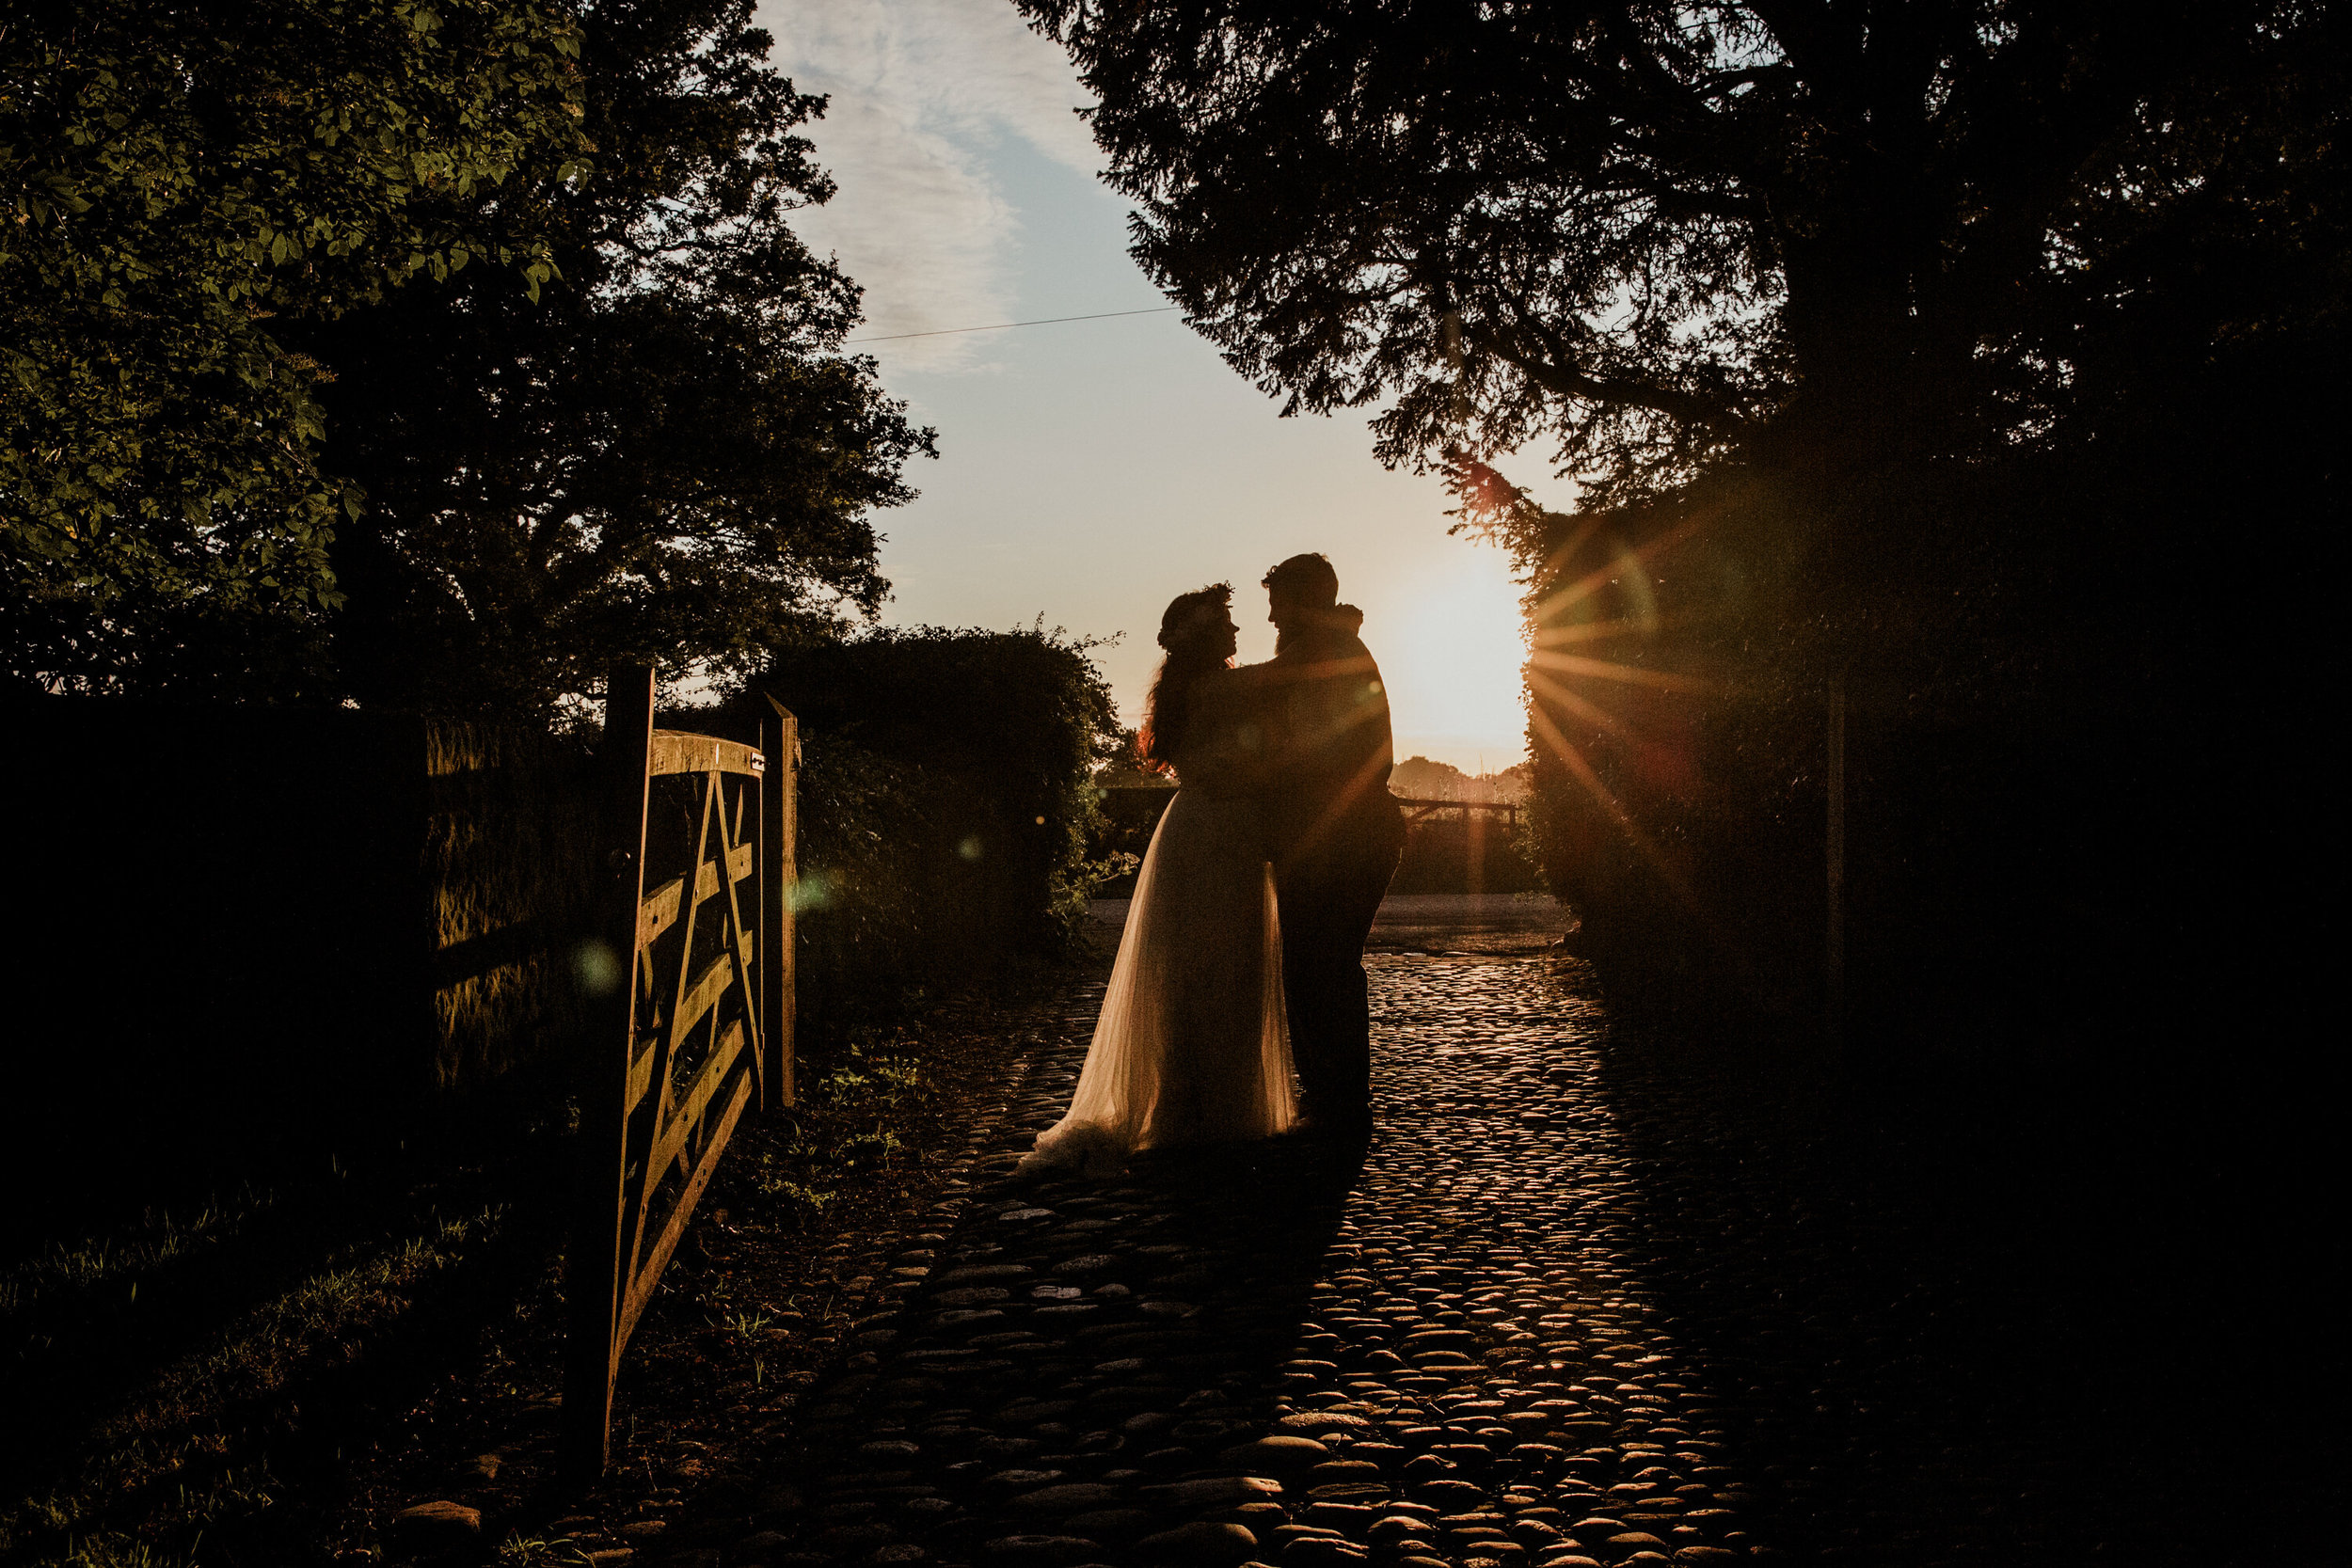 sunset portrait of bride and groom silhouette on cobbled path at Stock Farm wedding venue